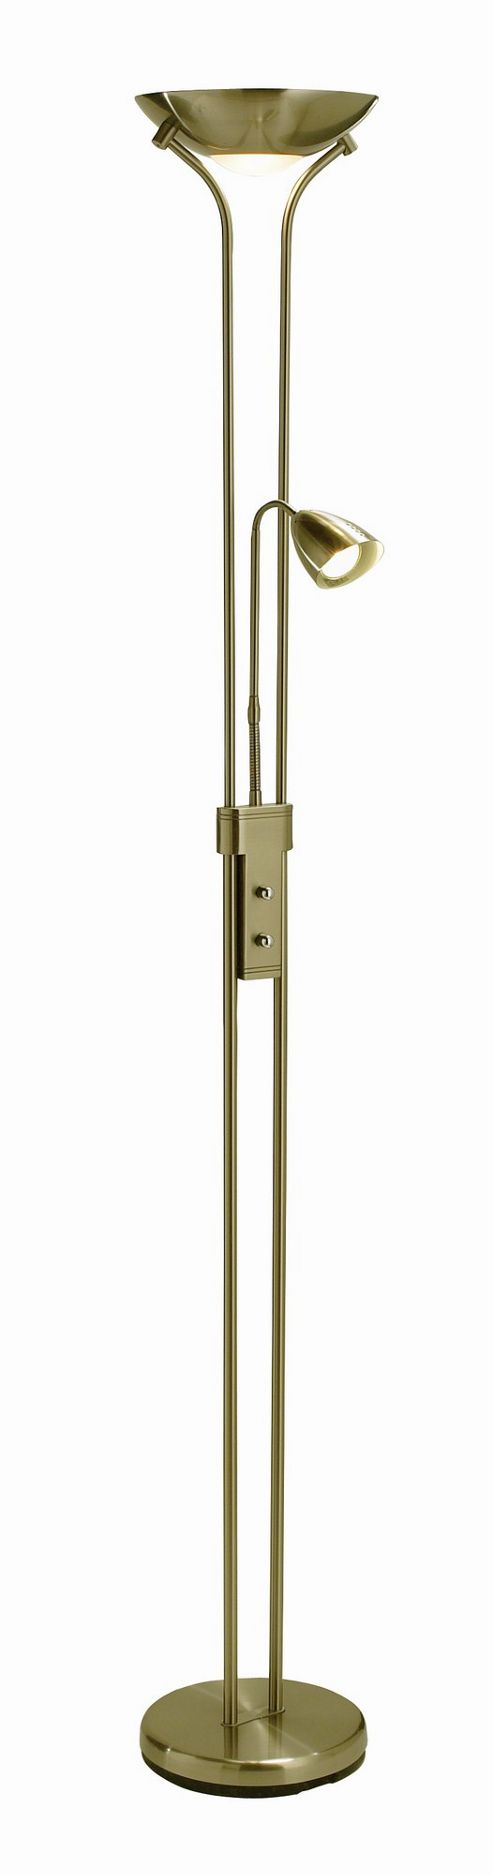 Mark Slojd Detroit 2 Light Floor Lamp - Brass